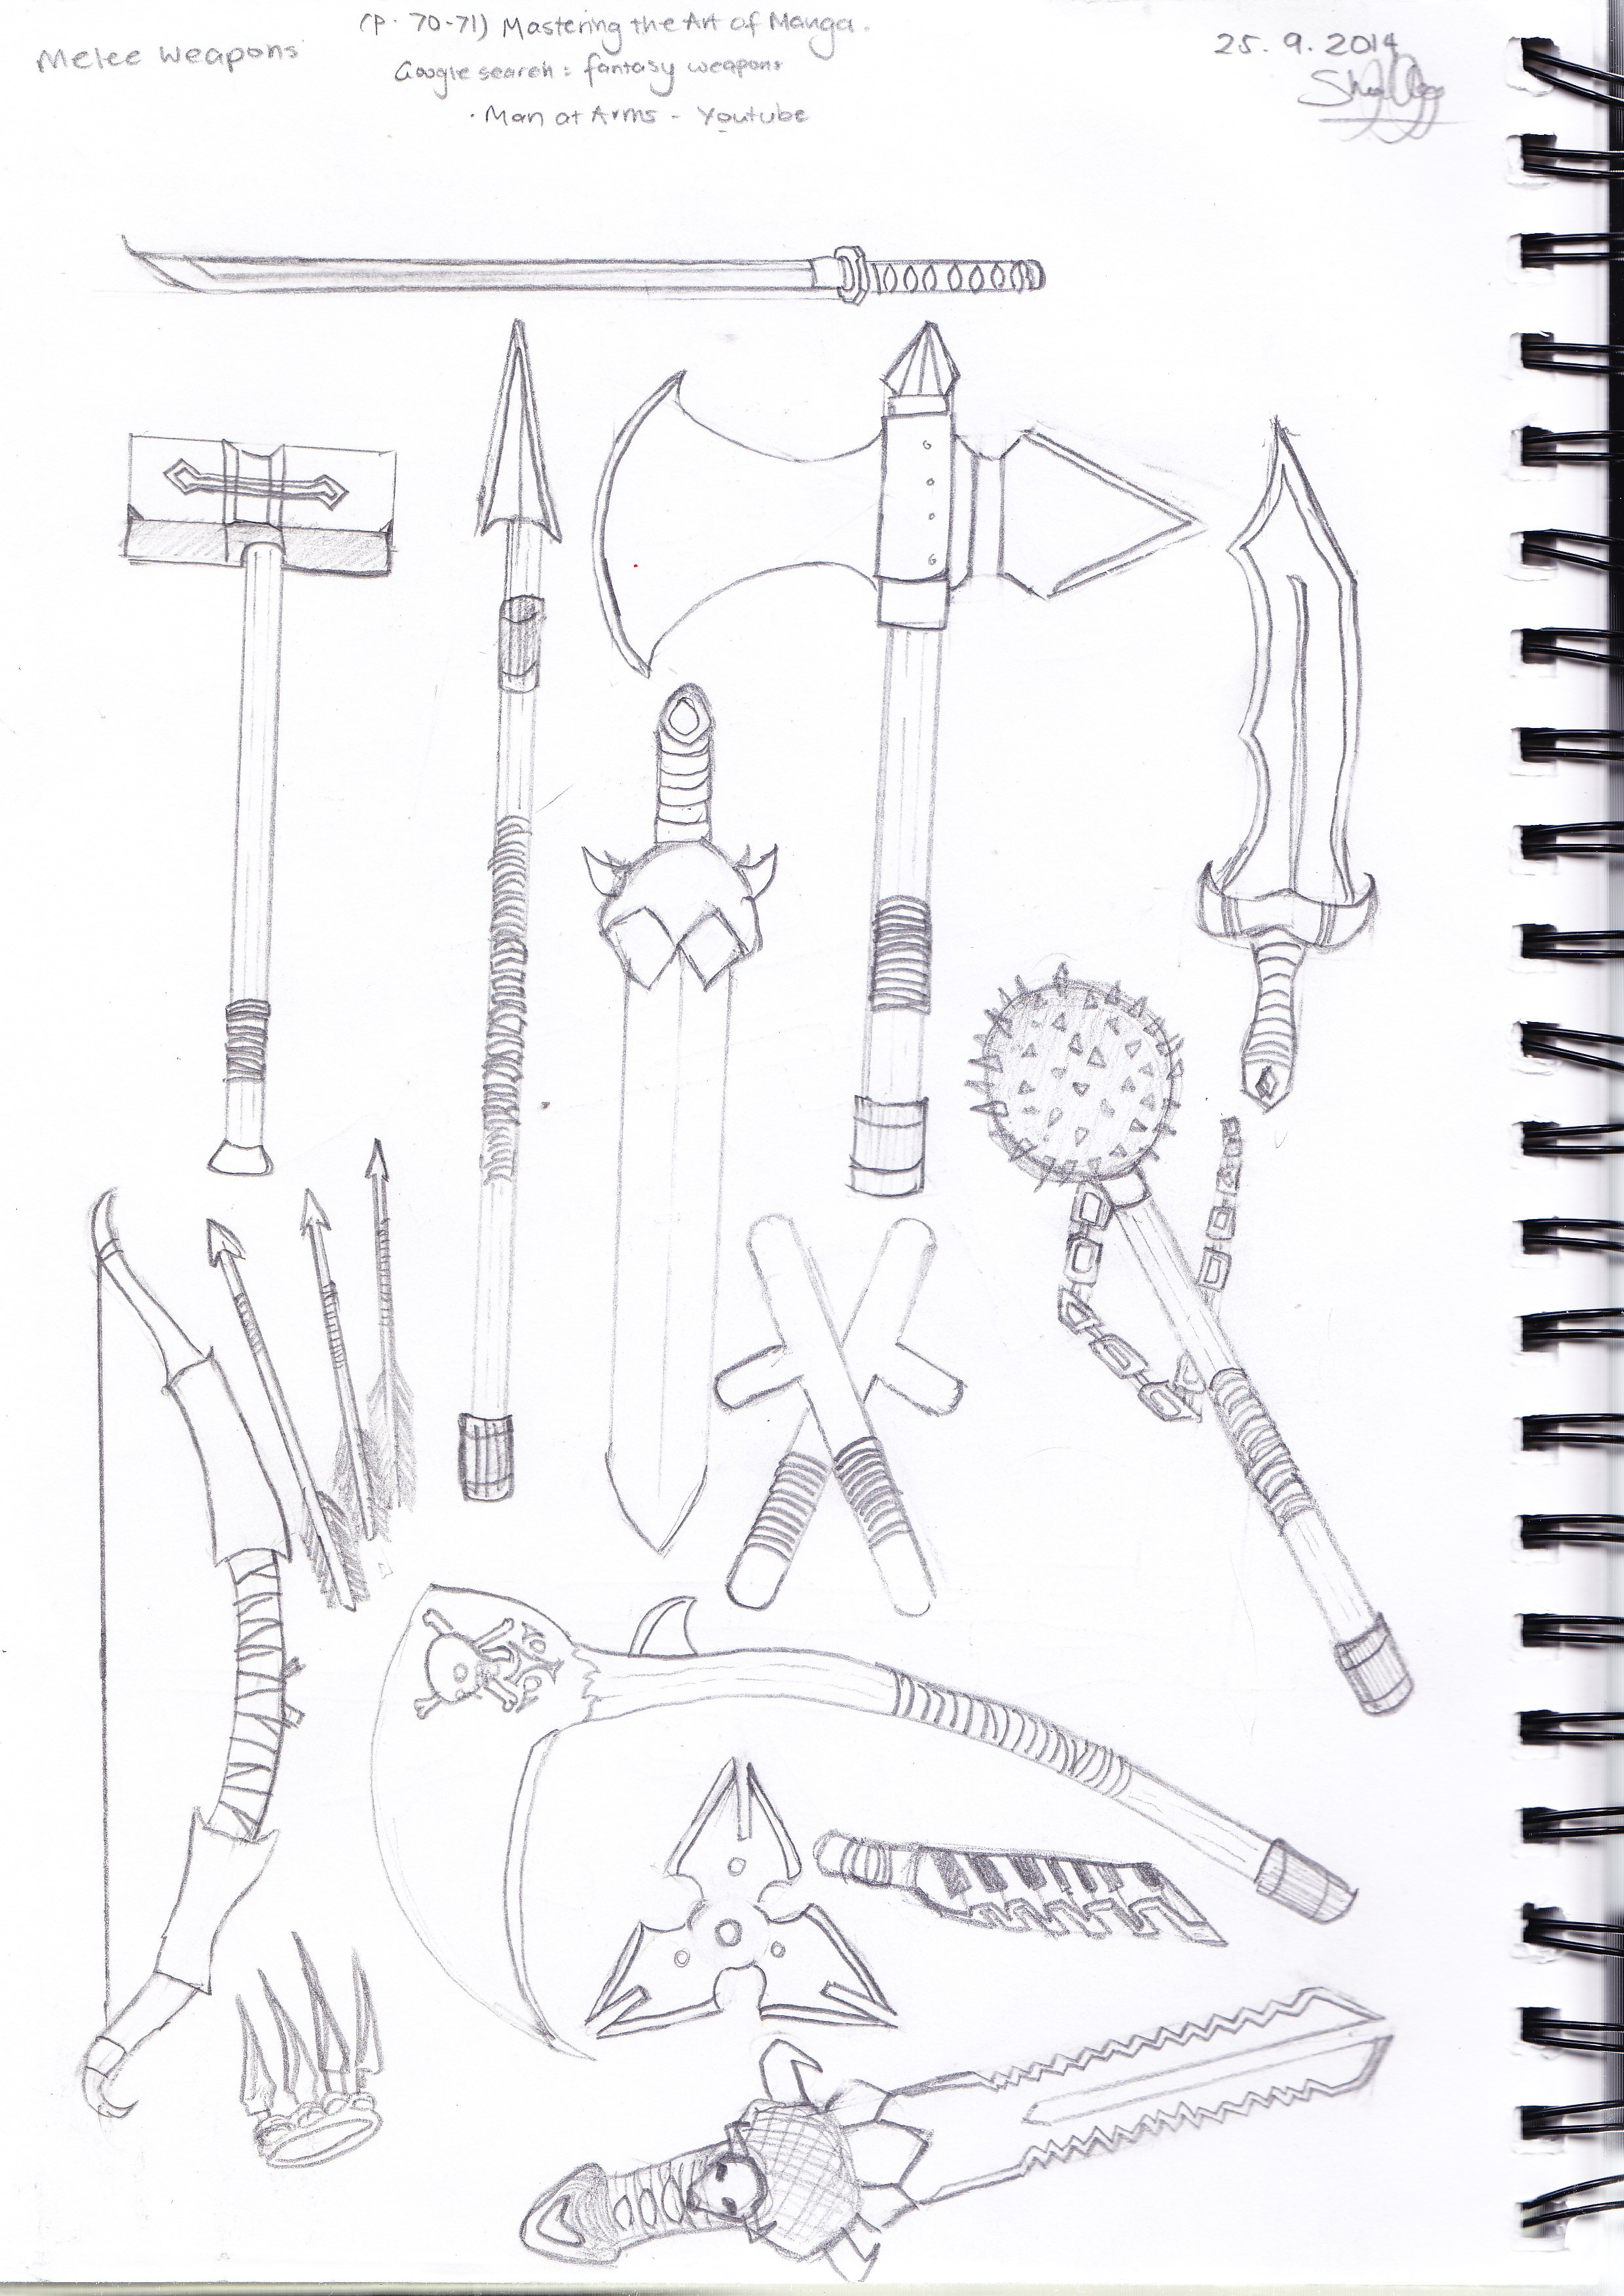 Melee Weapon Inspirations (Creative Project Research